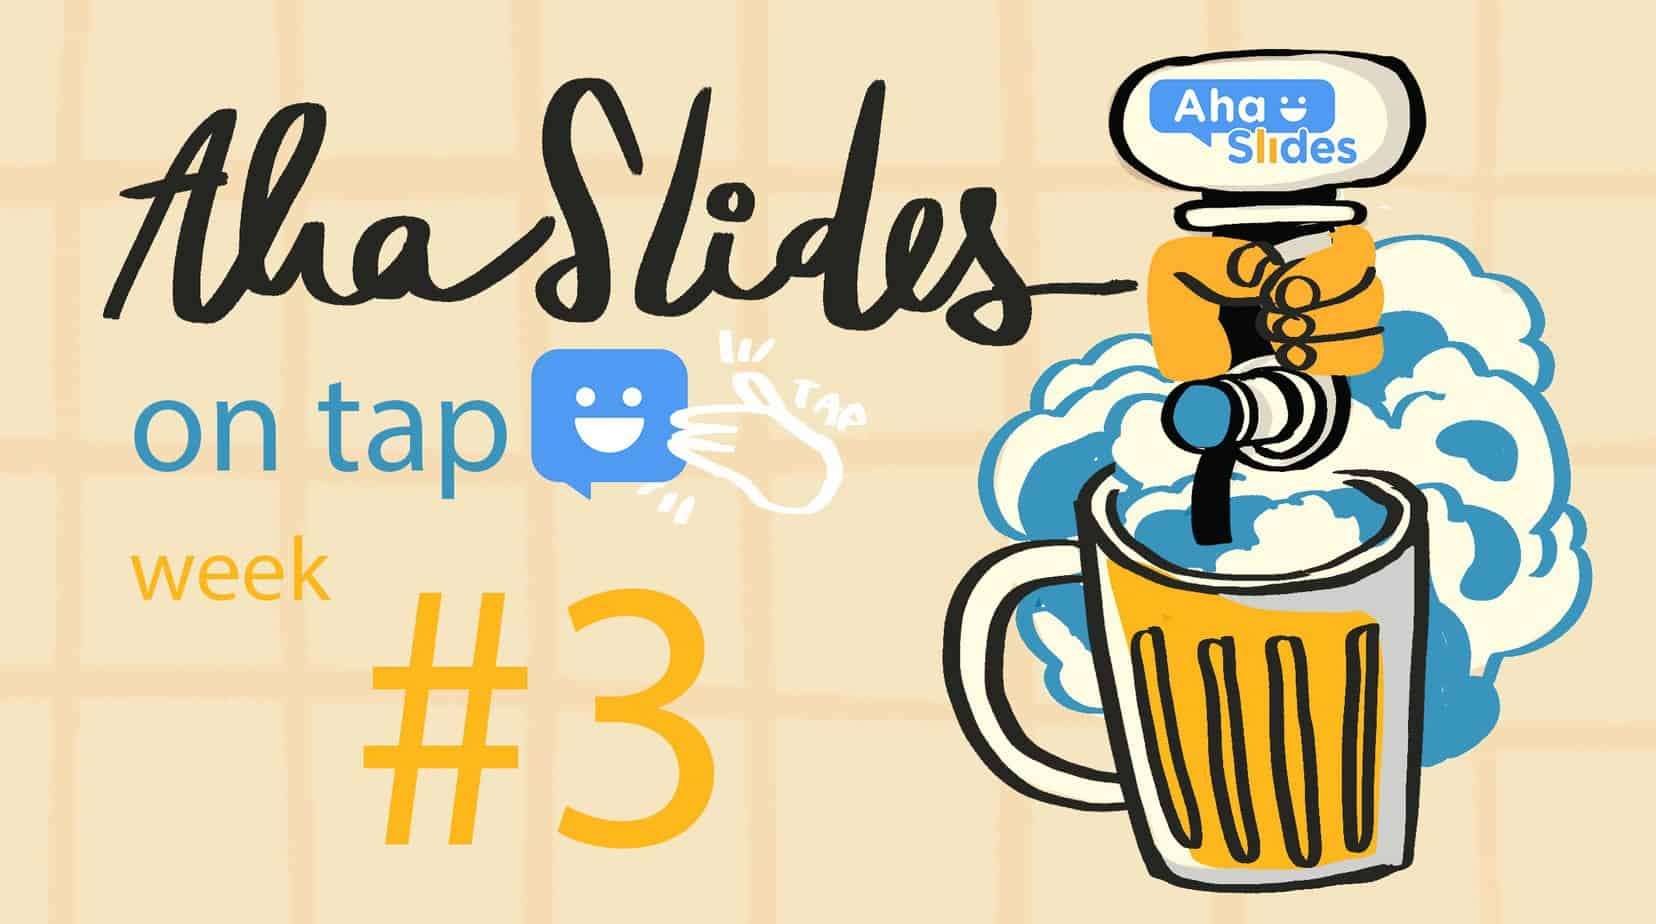 40 Pub Quiz Questions and Answers: AhaSlides on Tap #3 (Free Download!)